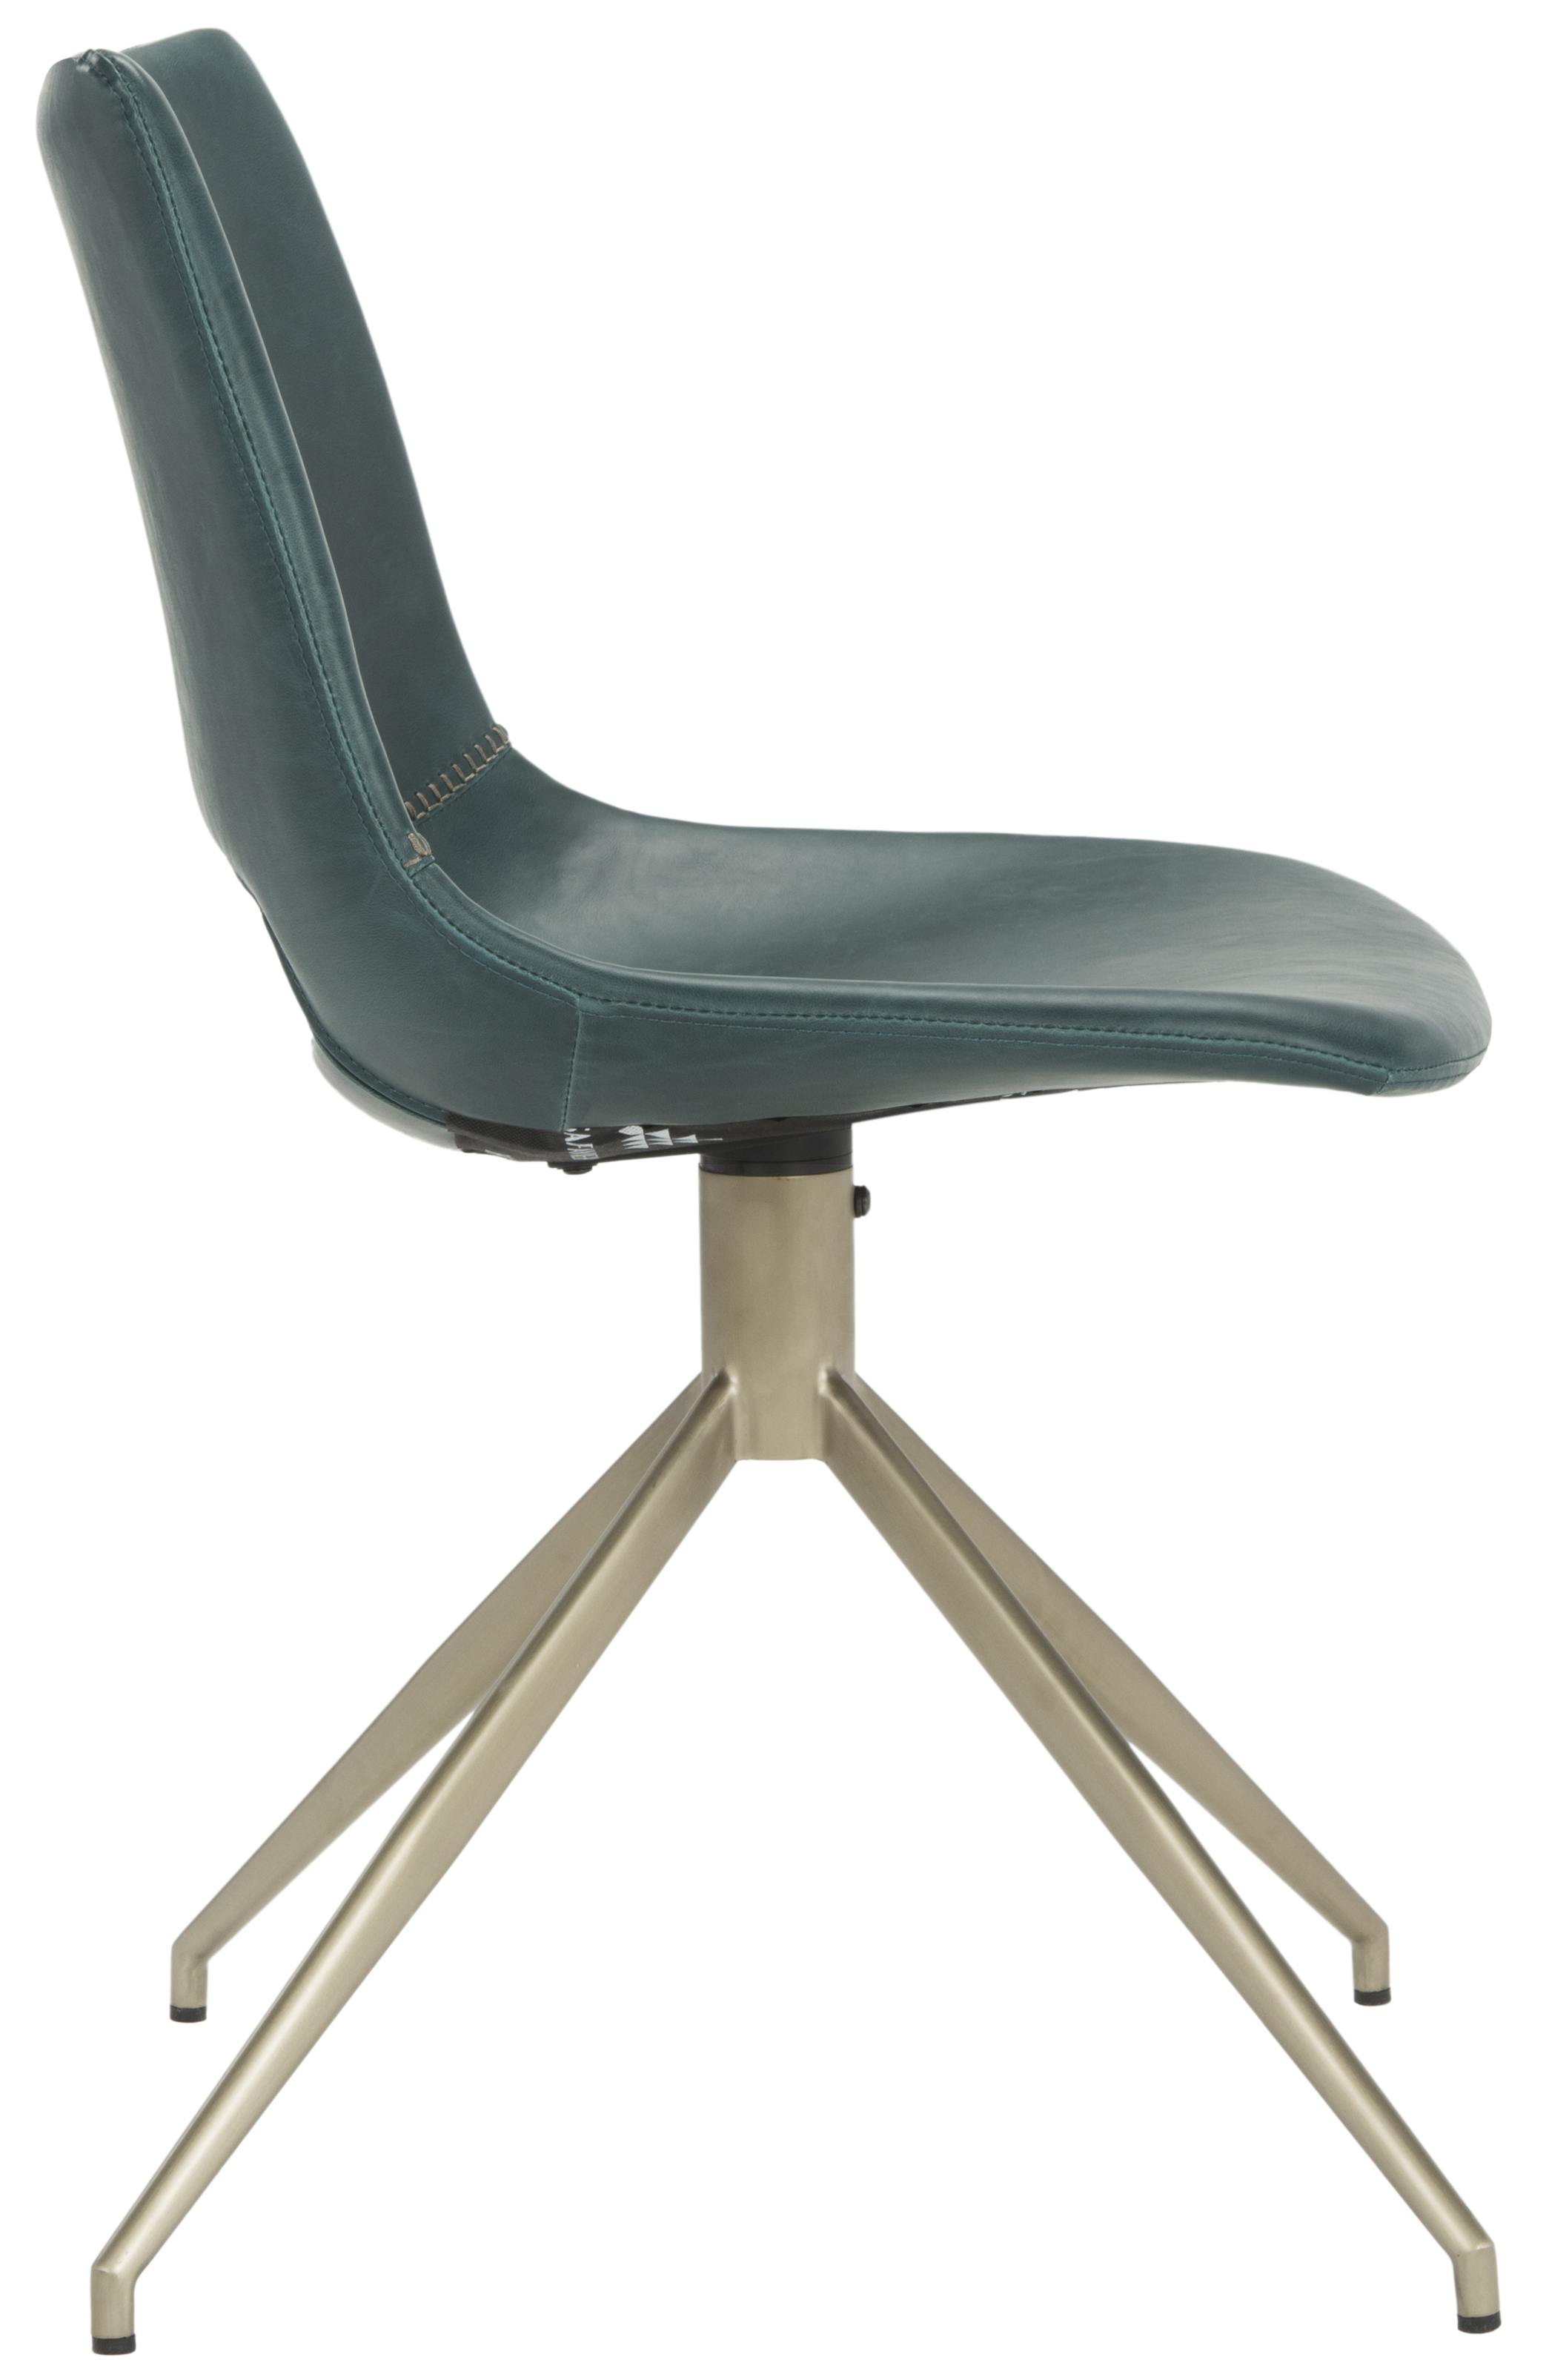 safavieh dining chairs porch rocking made in usa danube midcentury modern faux leather swivel chair 2